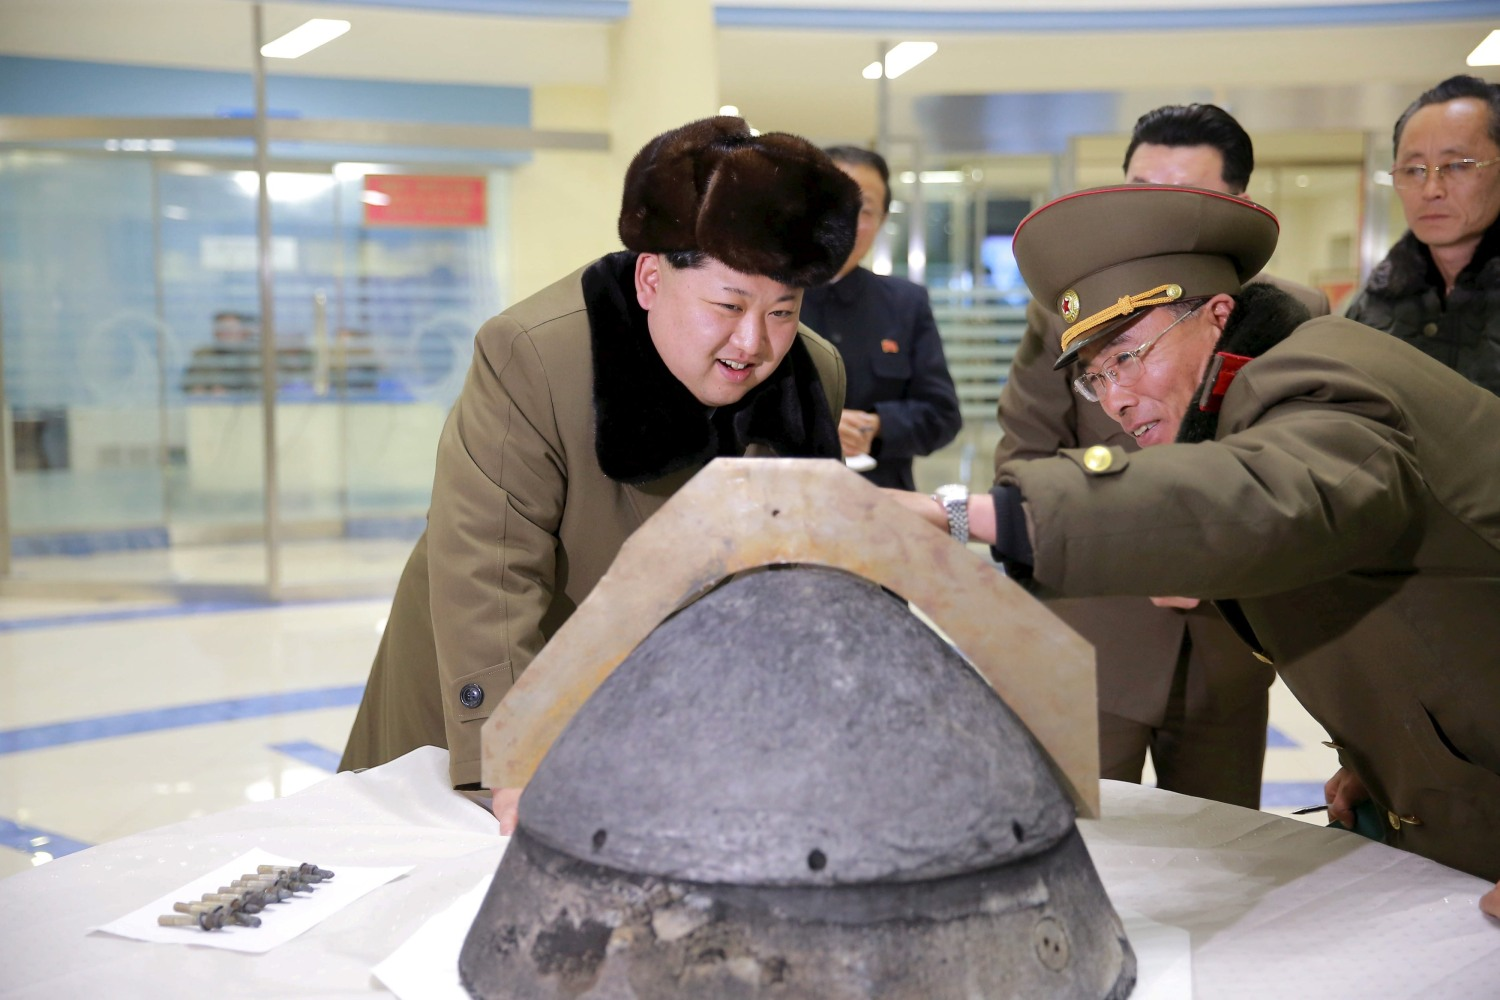 North Korea maintains readiness for nuclear test at any time - South Korea